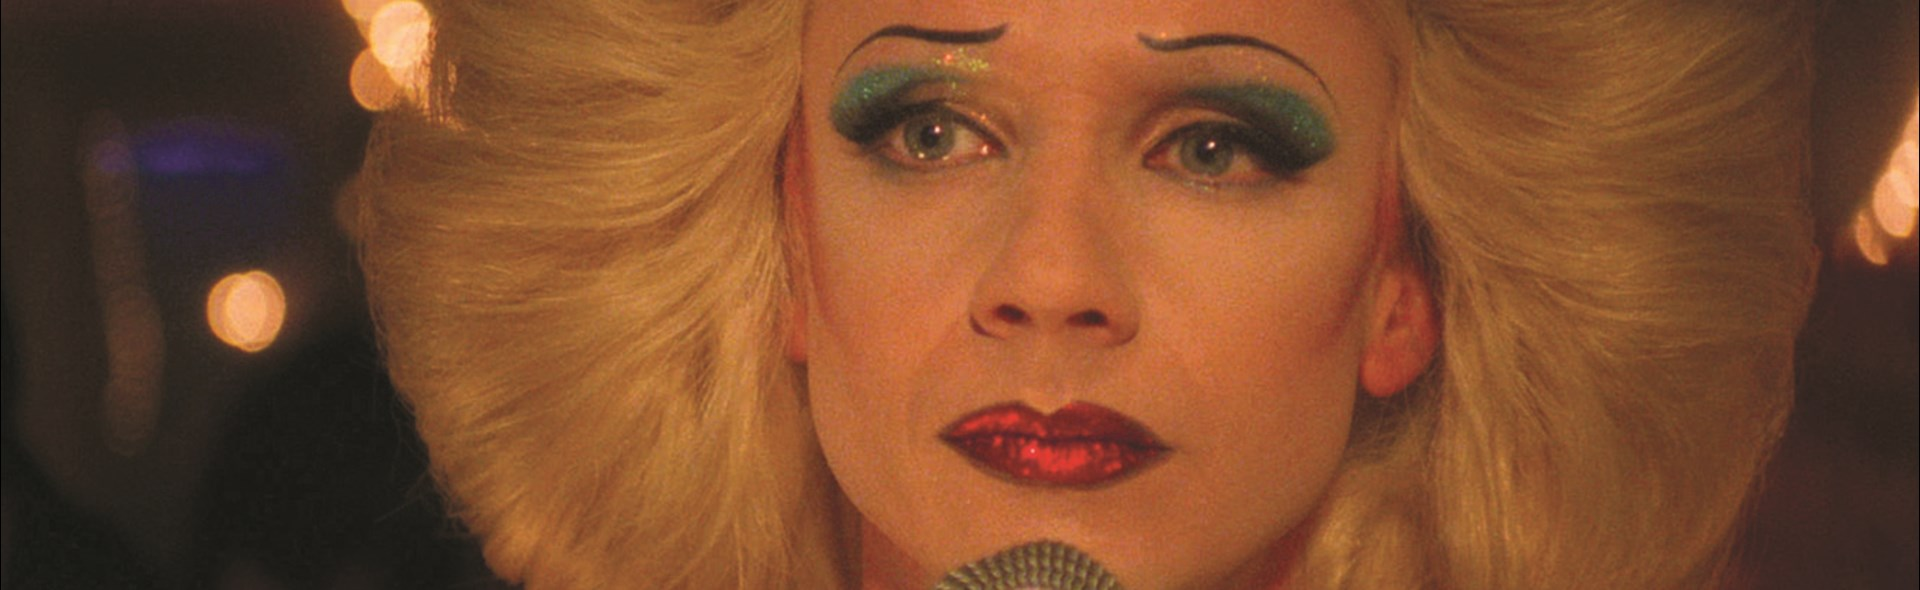 Make A Scene: Hedwig And The Angry Inch (18)